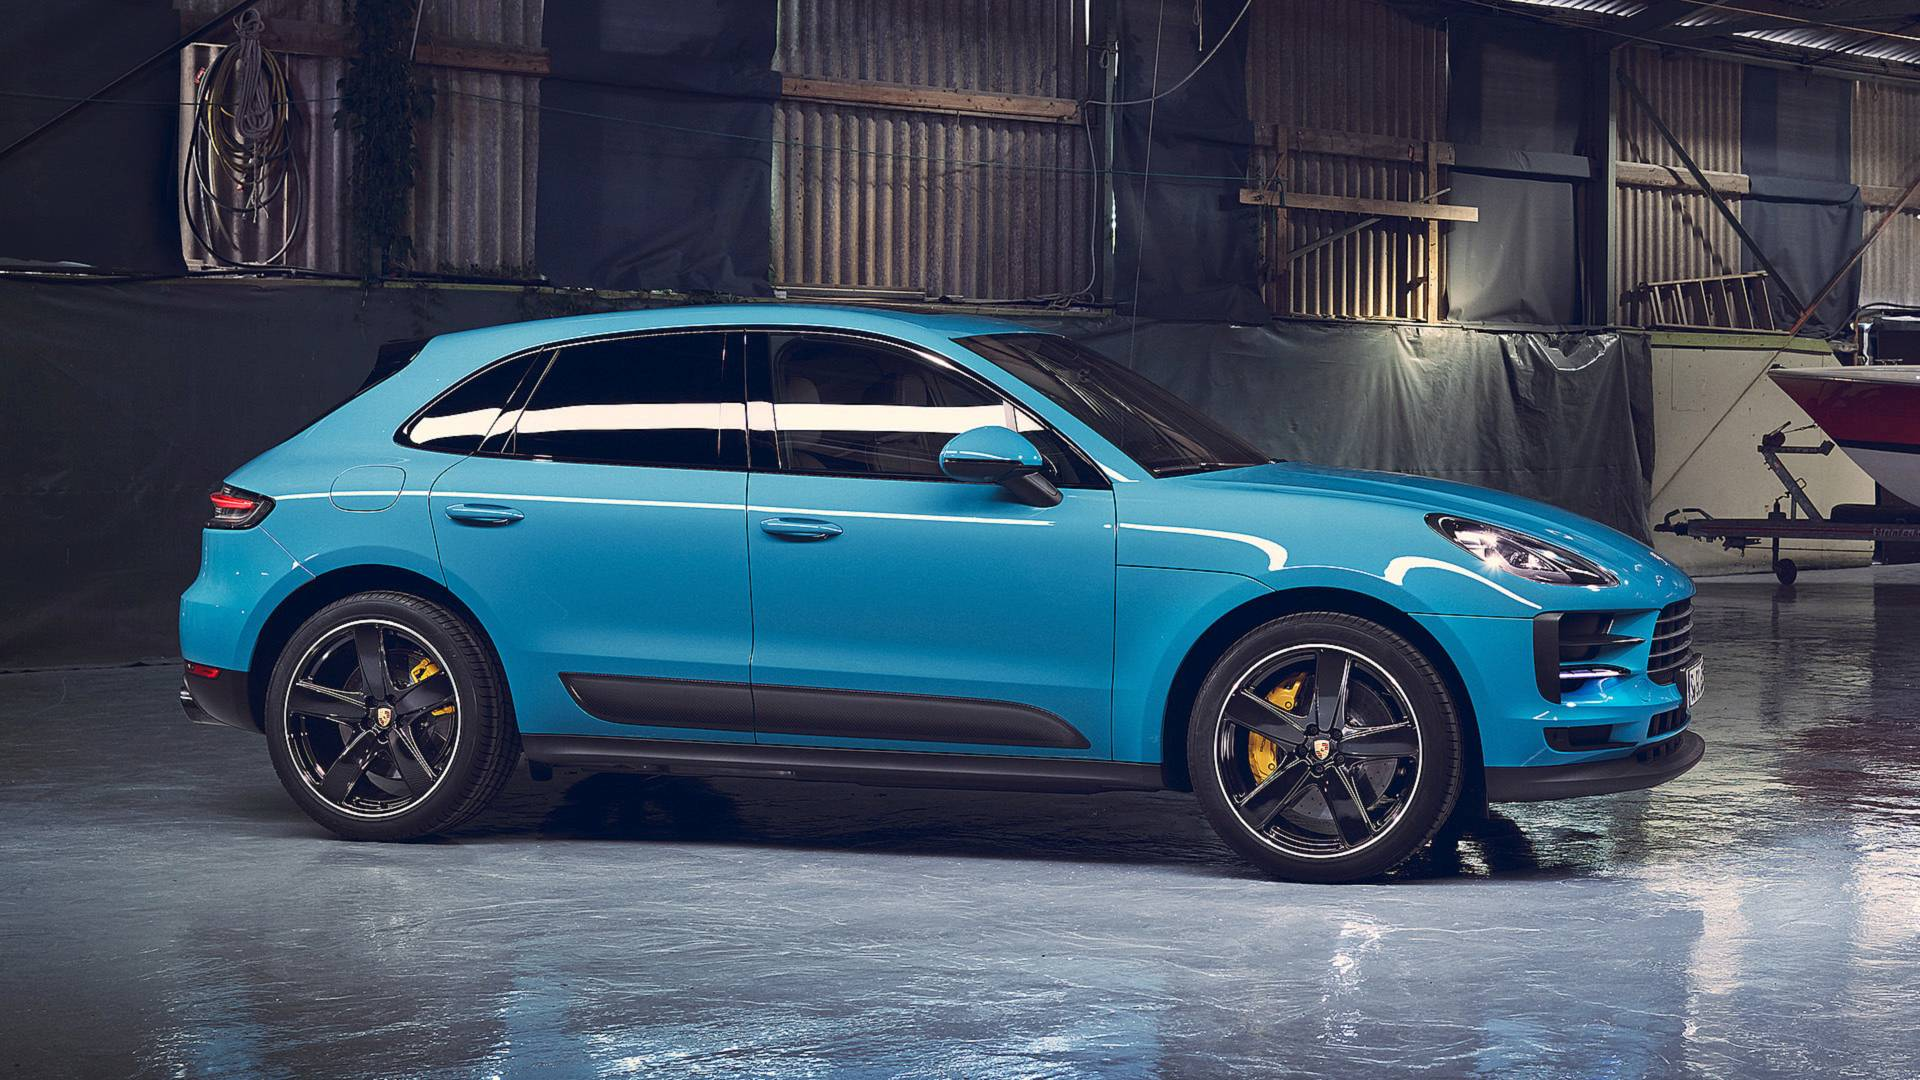 Porsche Macan Hd Wallpapers Autoevolution